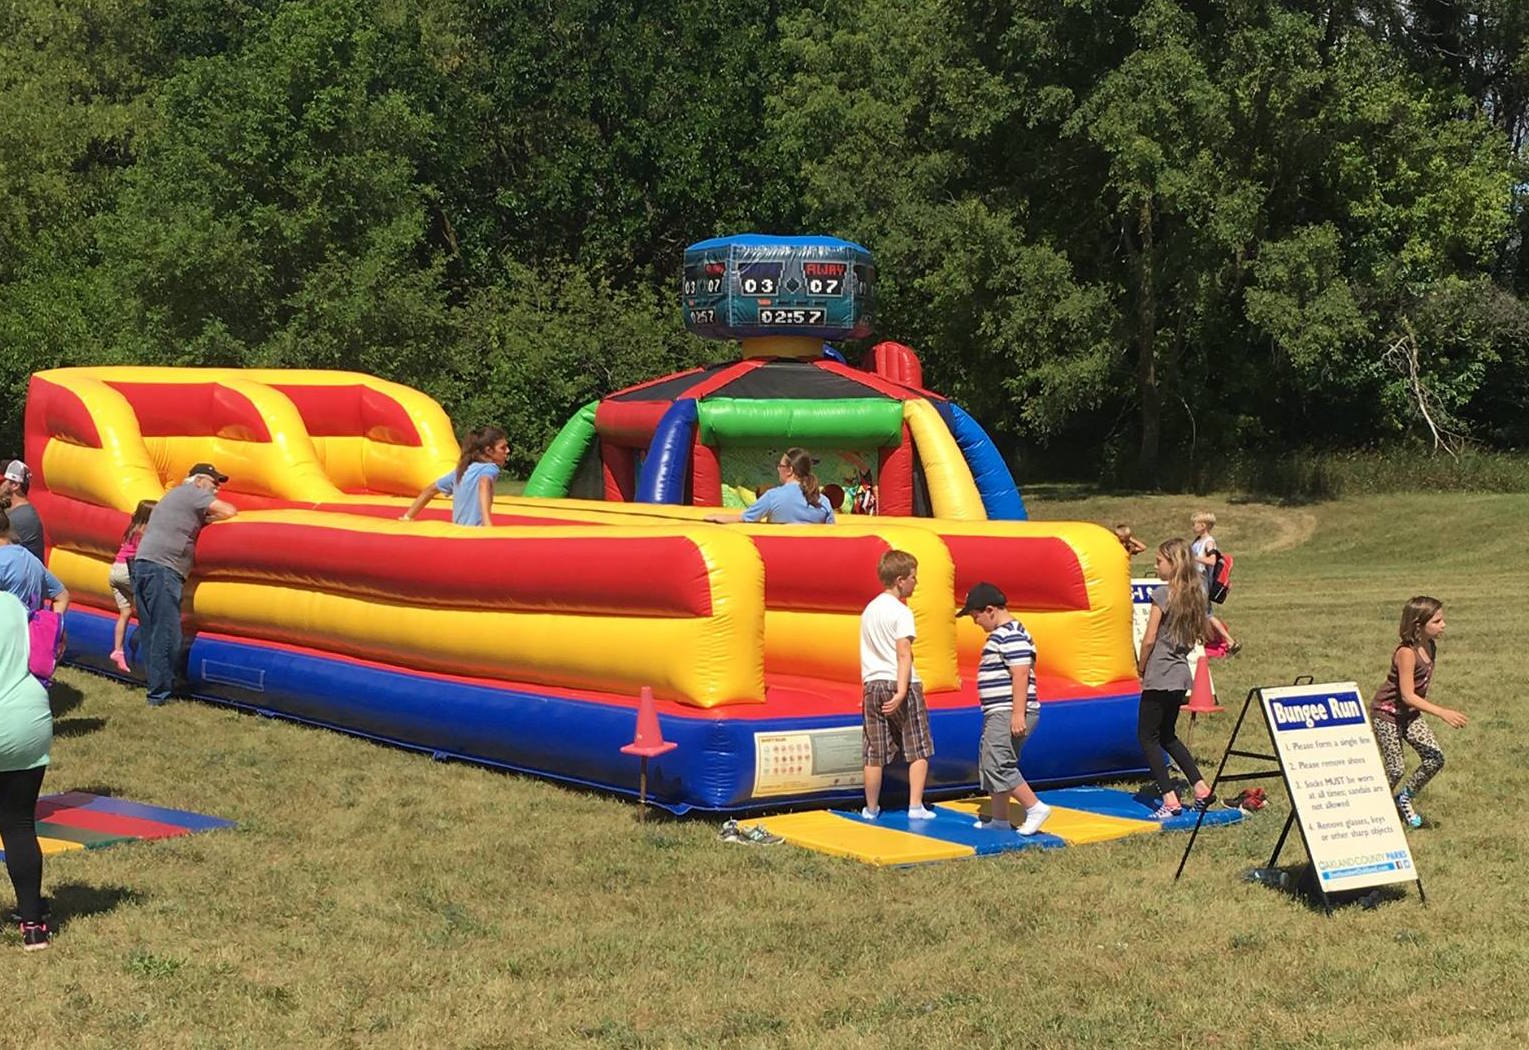 Inflatable slide with kids